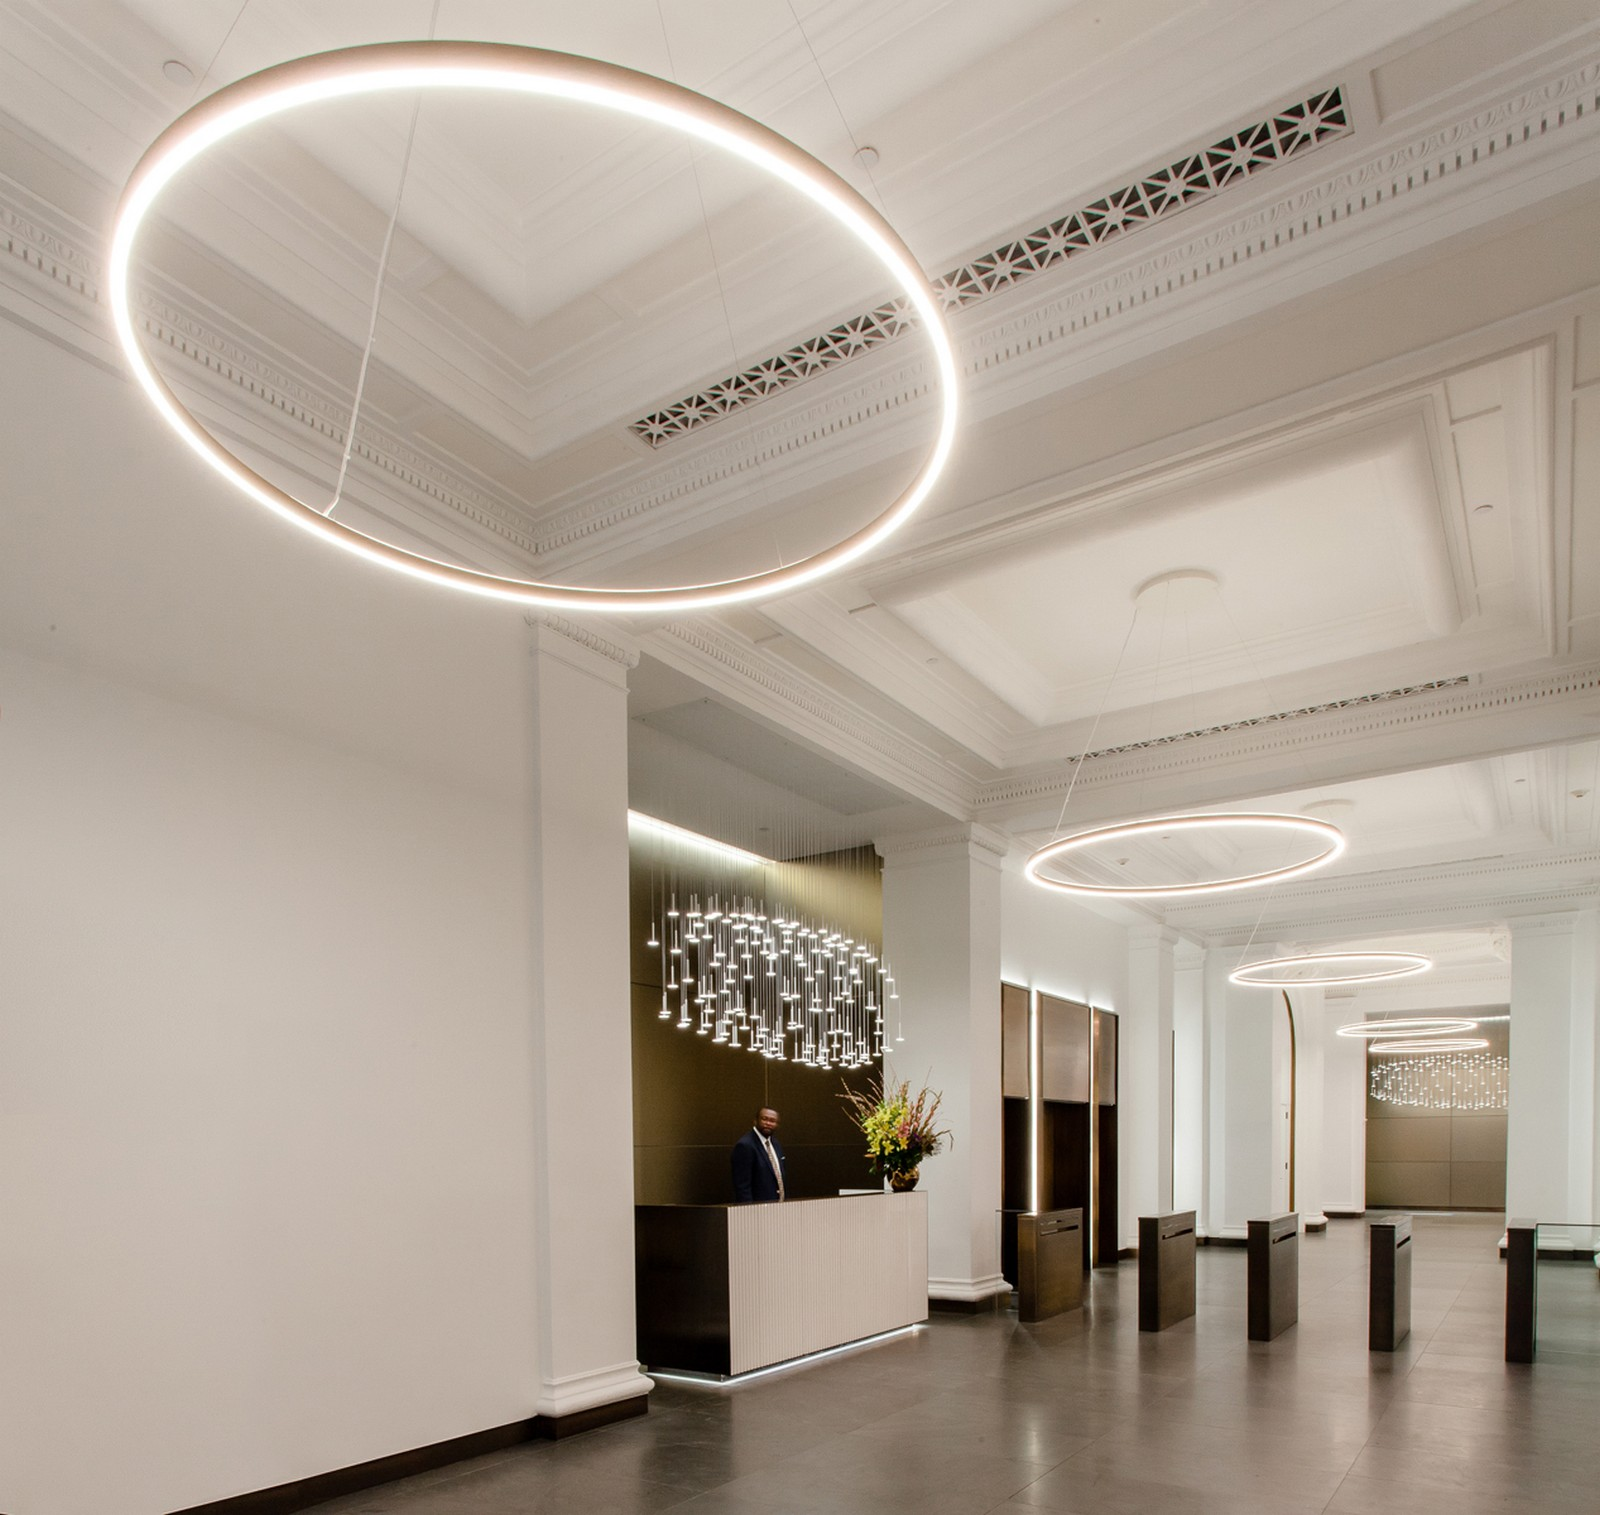 Click here for a full gallery of images at the IALD Awards press site & IALD - Home - International Association of Lighting Designers azcodes.com